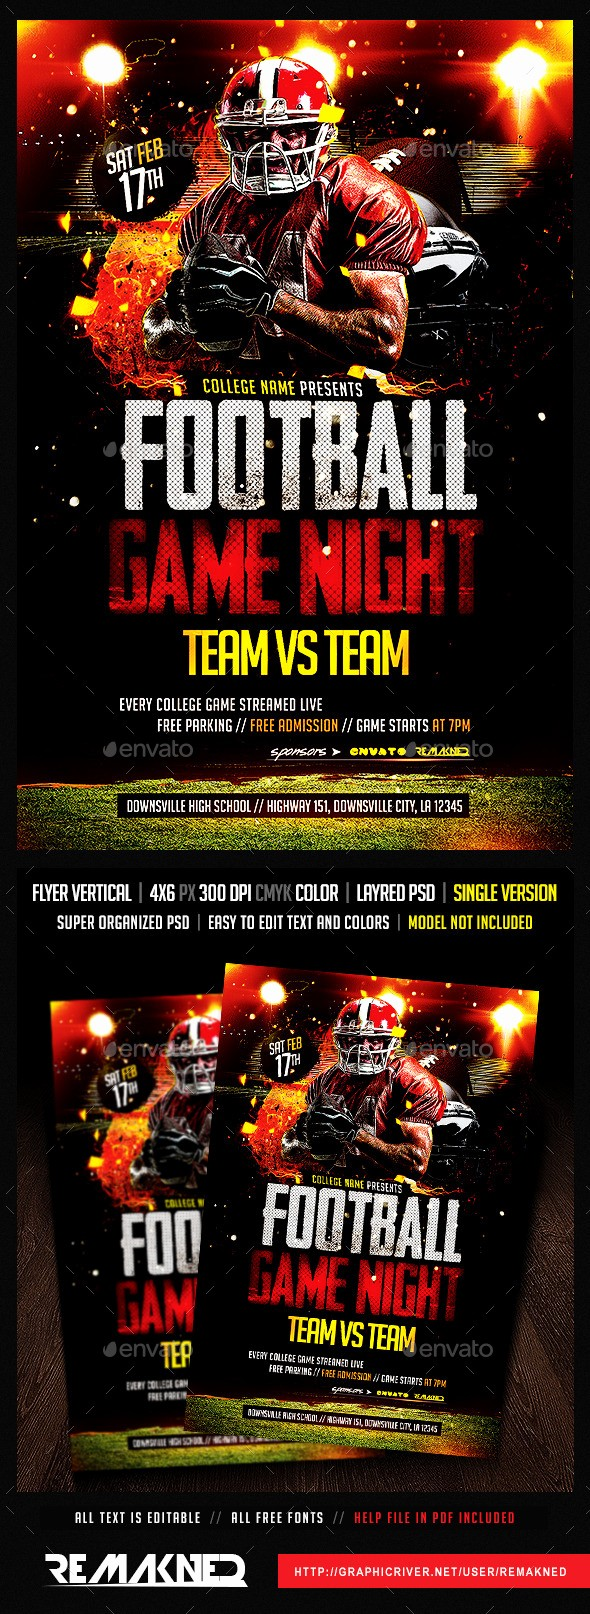 Free Game Night Flyer Template Elegant Football Game Night